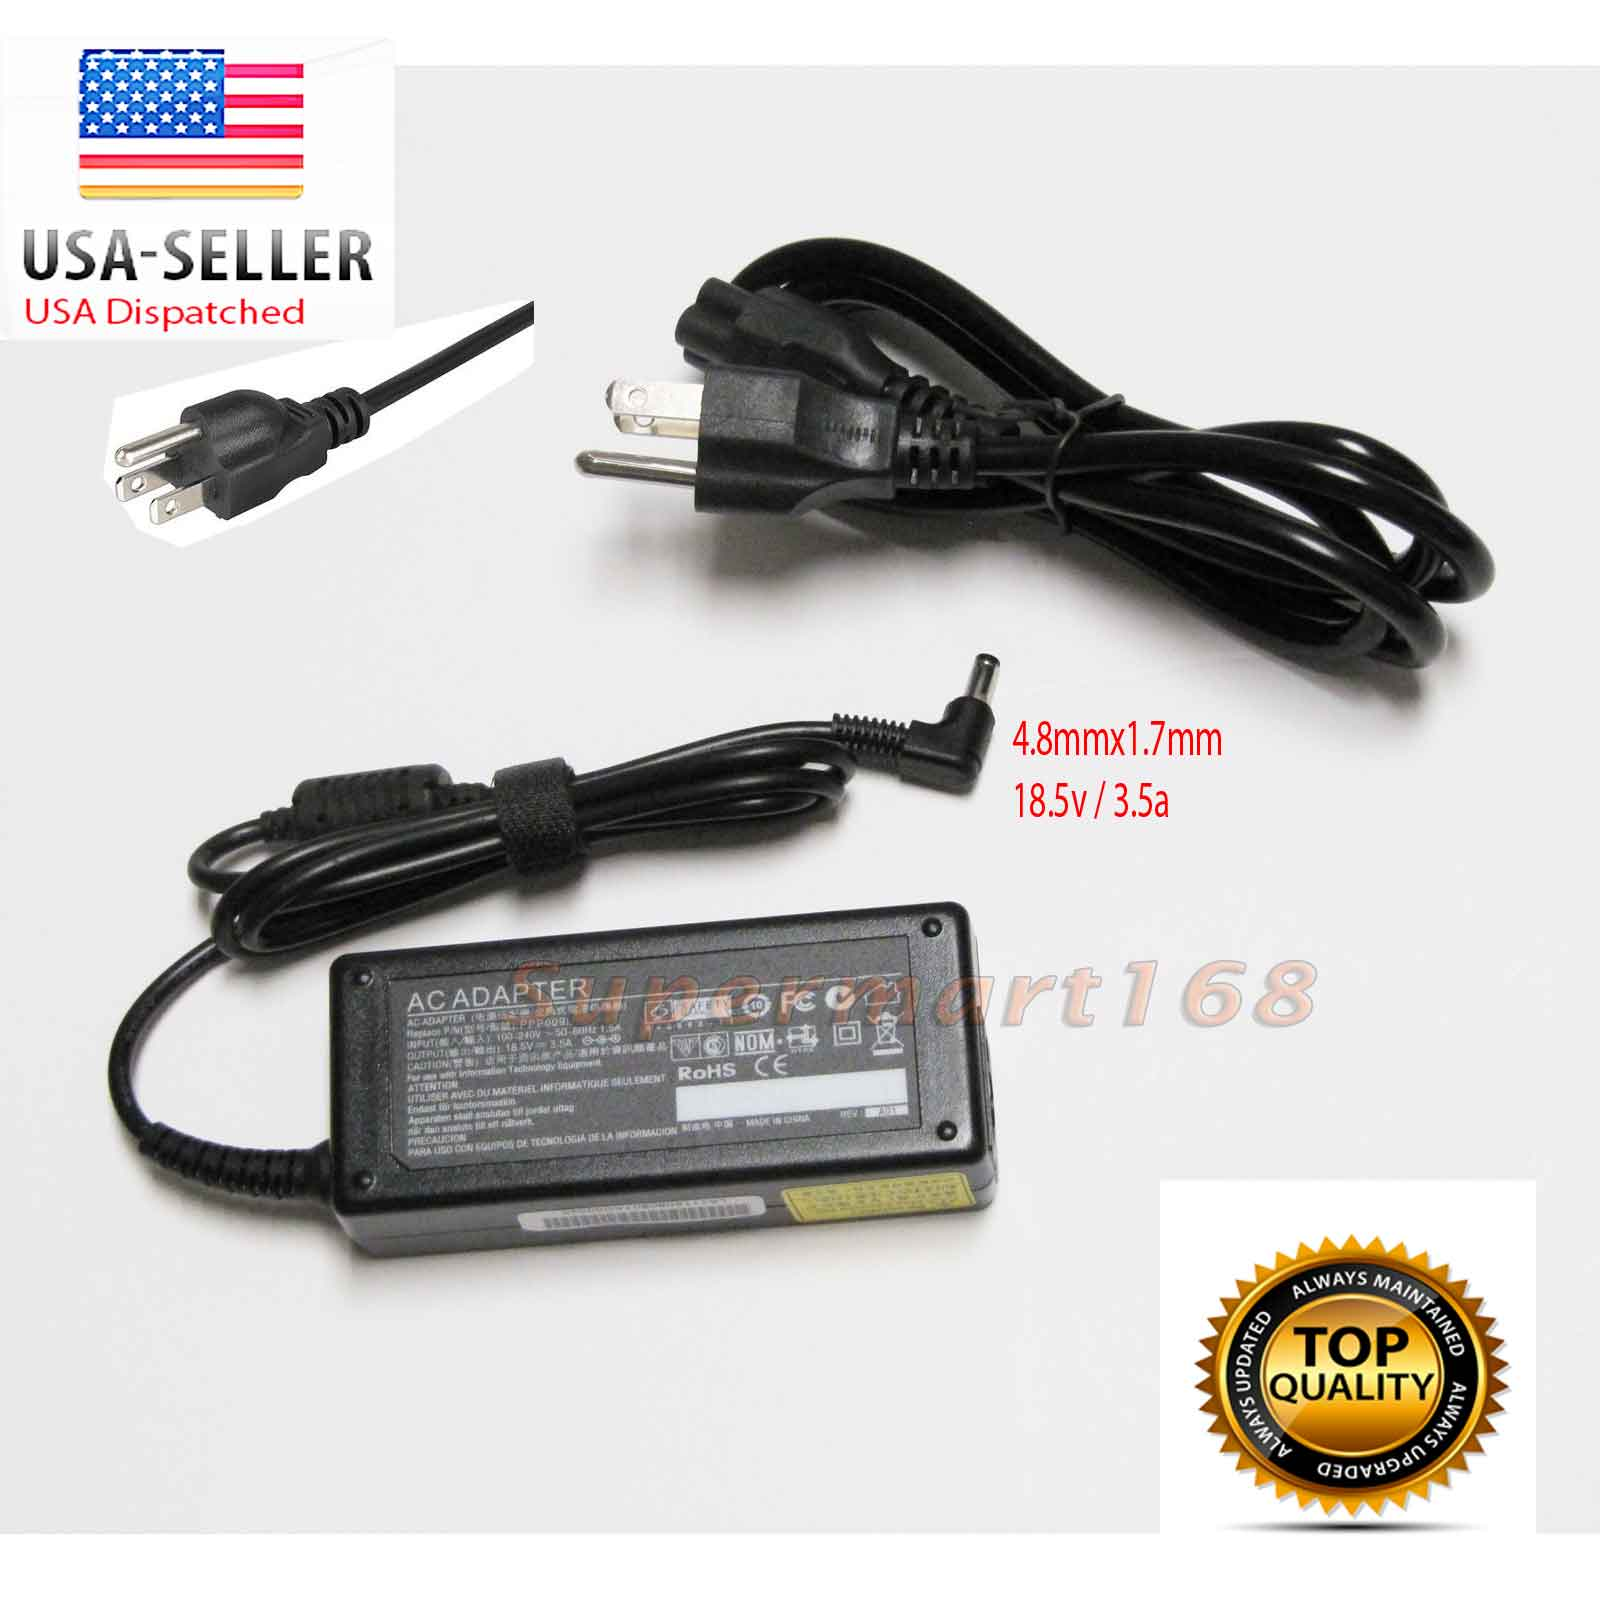 Pc Power Cord Wiring Diagram Auto Electrical Andco Eagle Actuator